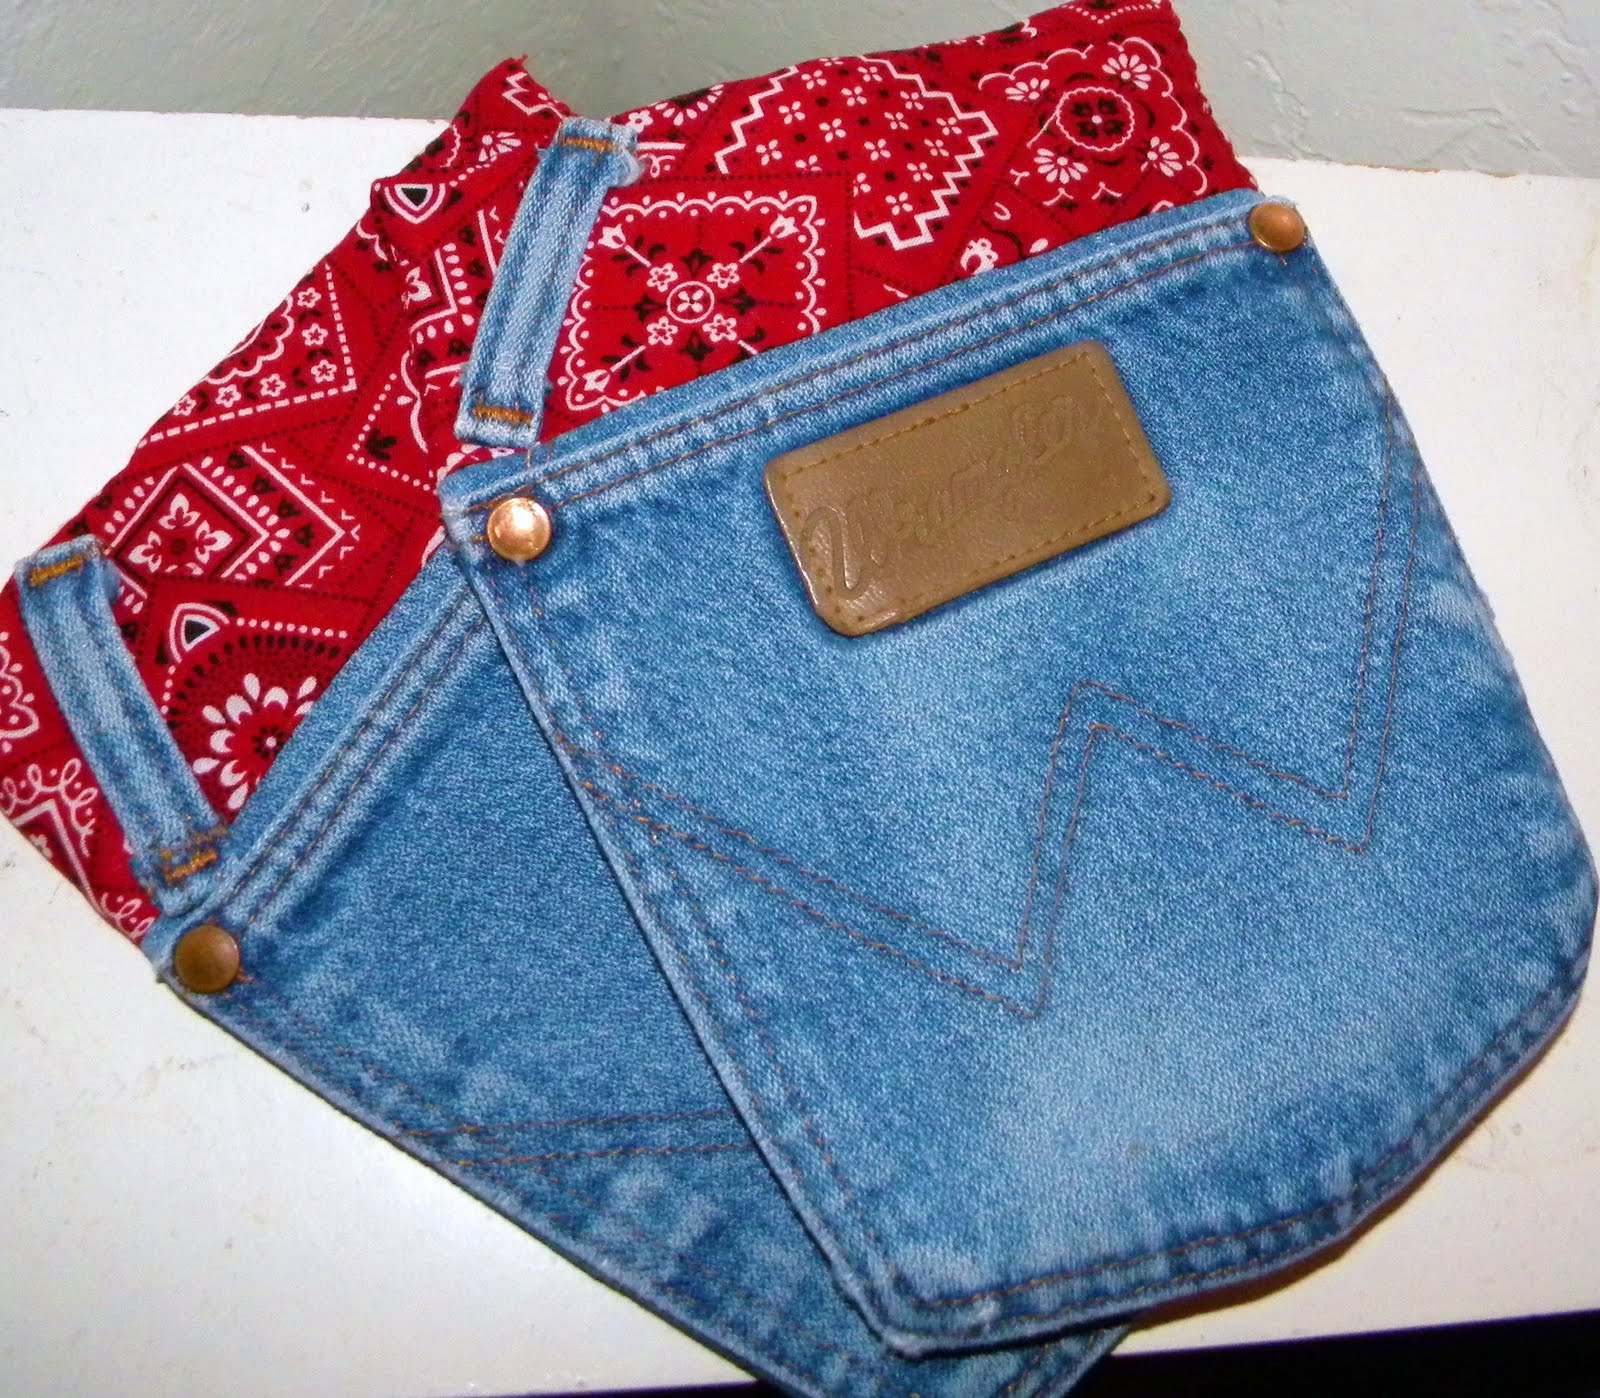 Simply soares jean pocket pot holder tutorial super cute super easy jean pocket pot holders solutioingenieria Image collections